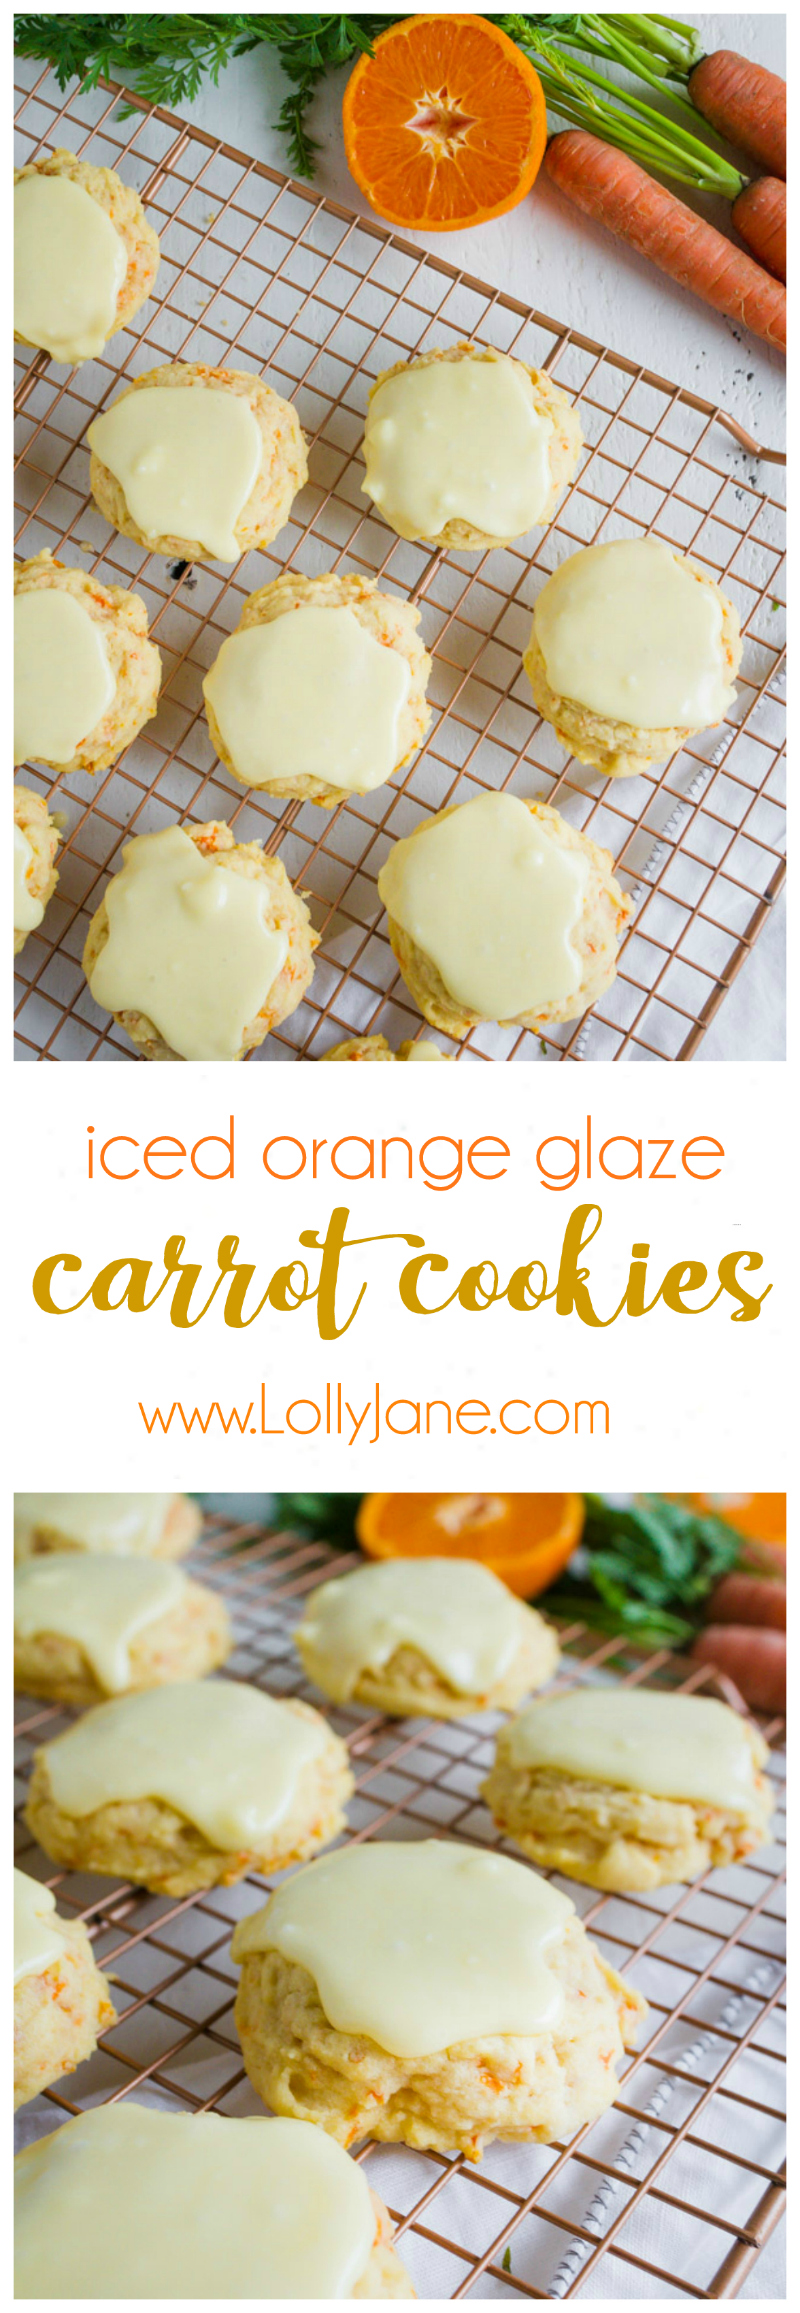 iced carrot cookies recipe - Our favorite iced orange glaze carrot cookies recipe, yum! You will love this super easy cake like carrot cookies recipe, the orange glaze icing is sooo zesty and fresh, mm!